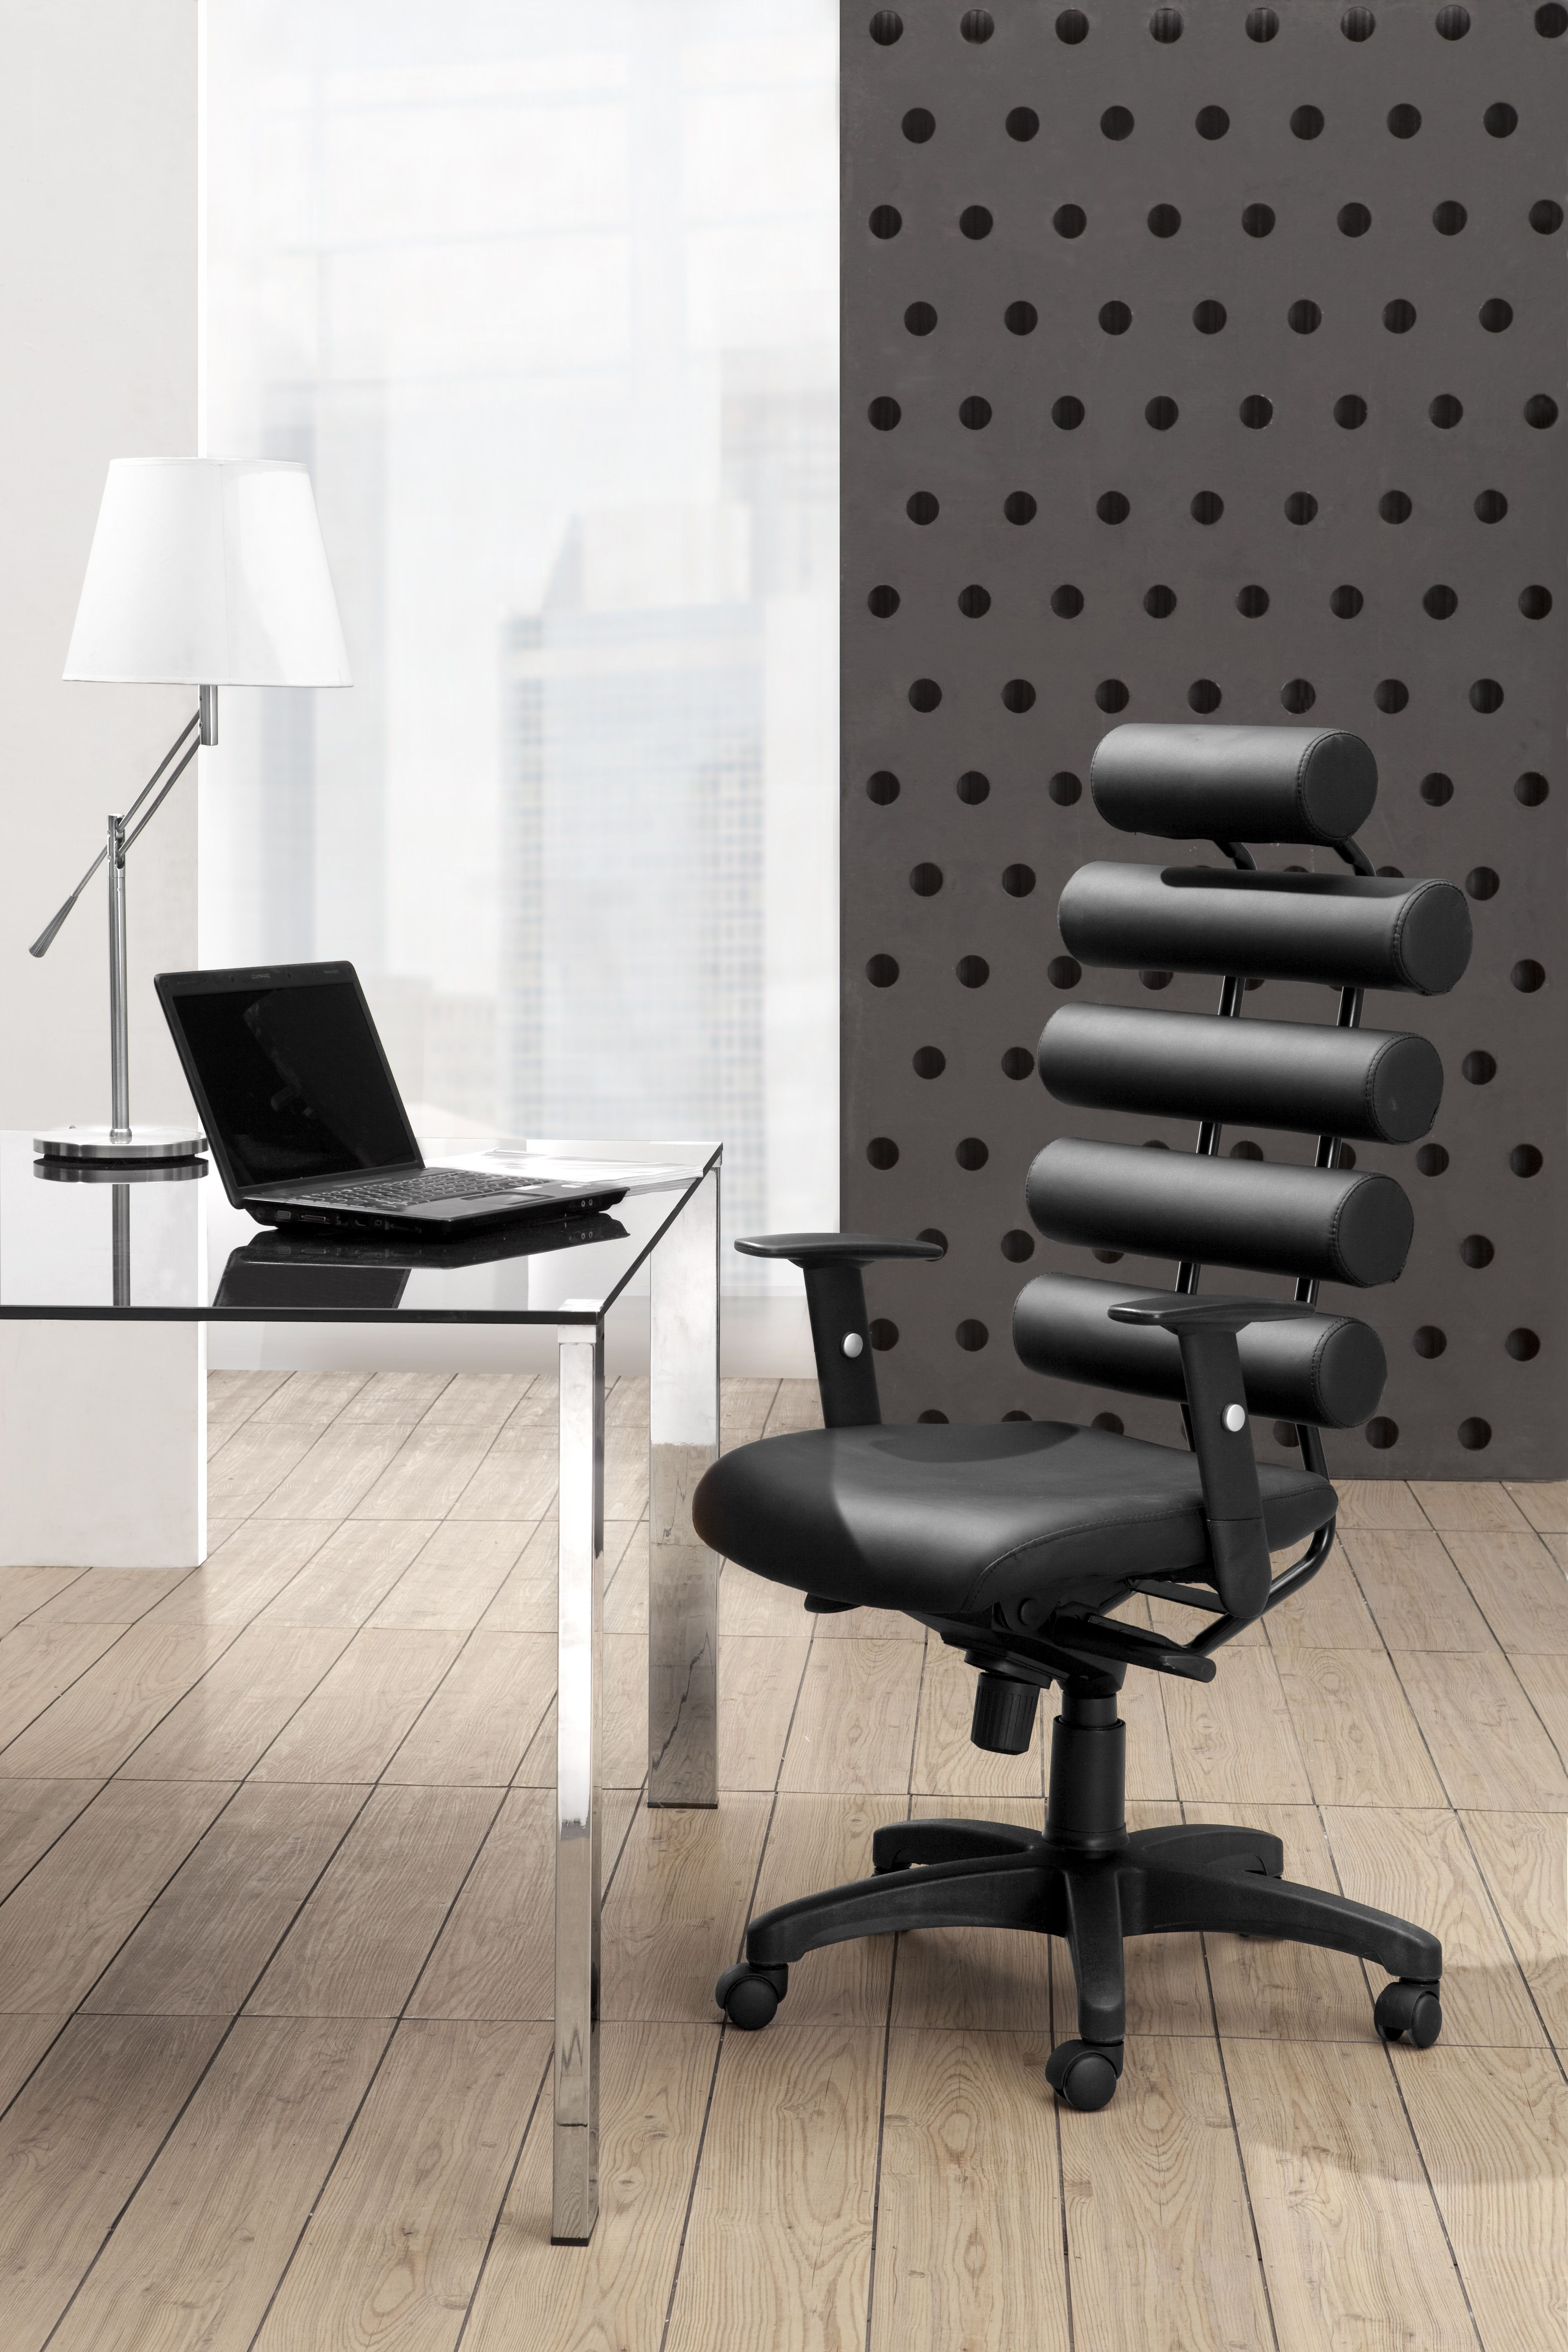 Charming Absolutely One Of My Favorite Office Chairs On The Market Right Now. Love  The Zuo Unico Office Chair!